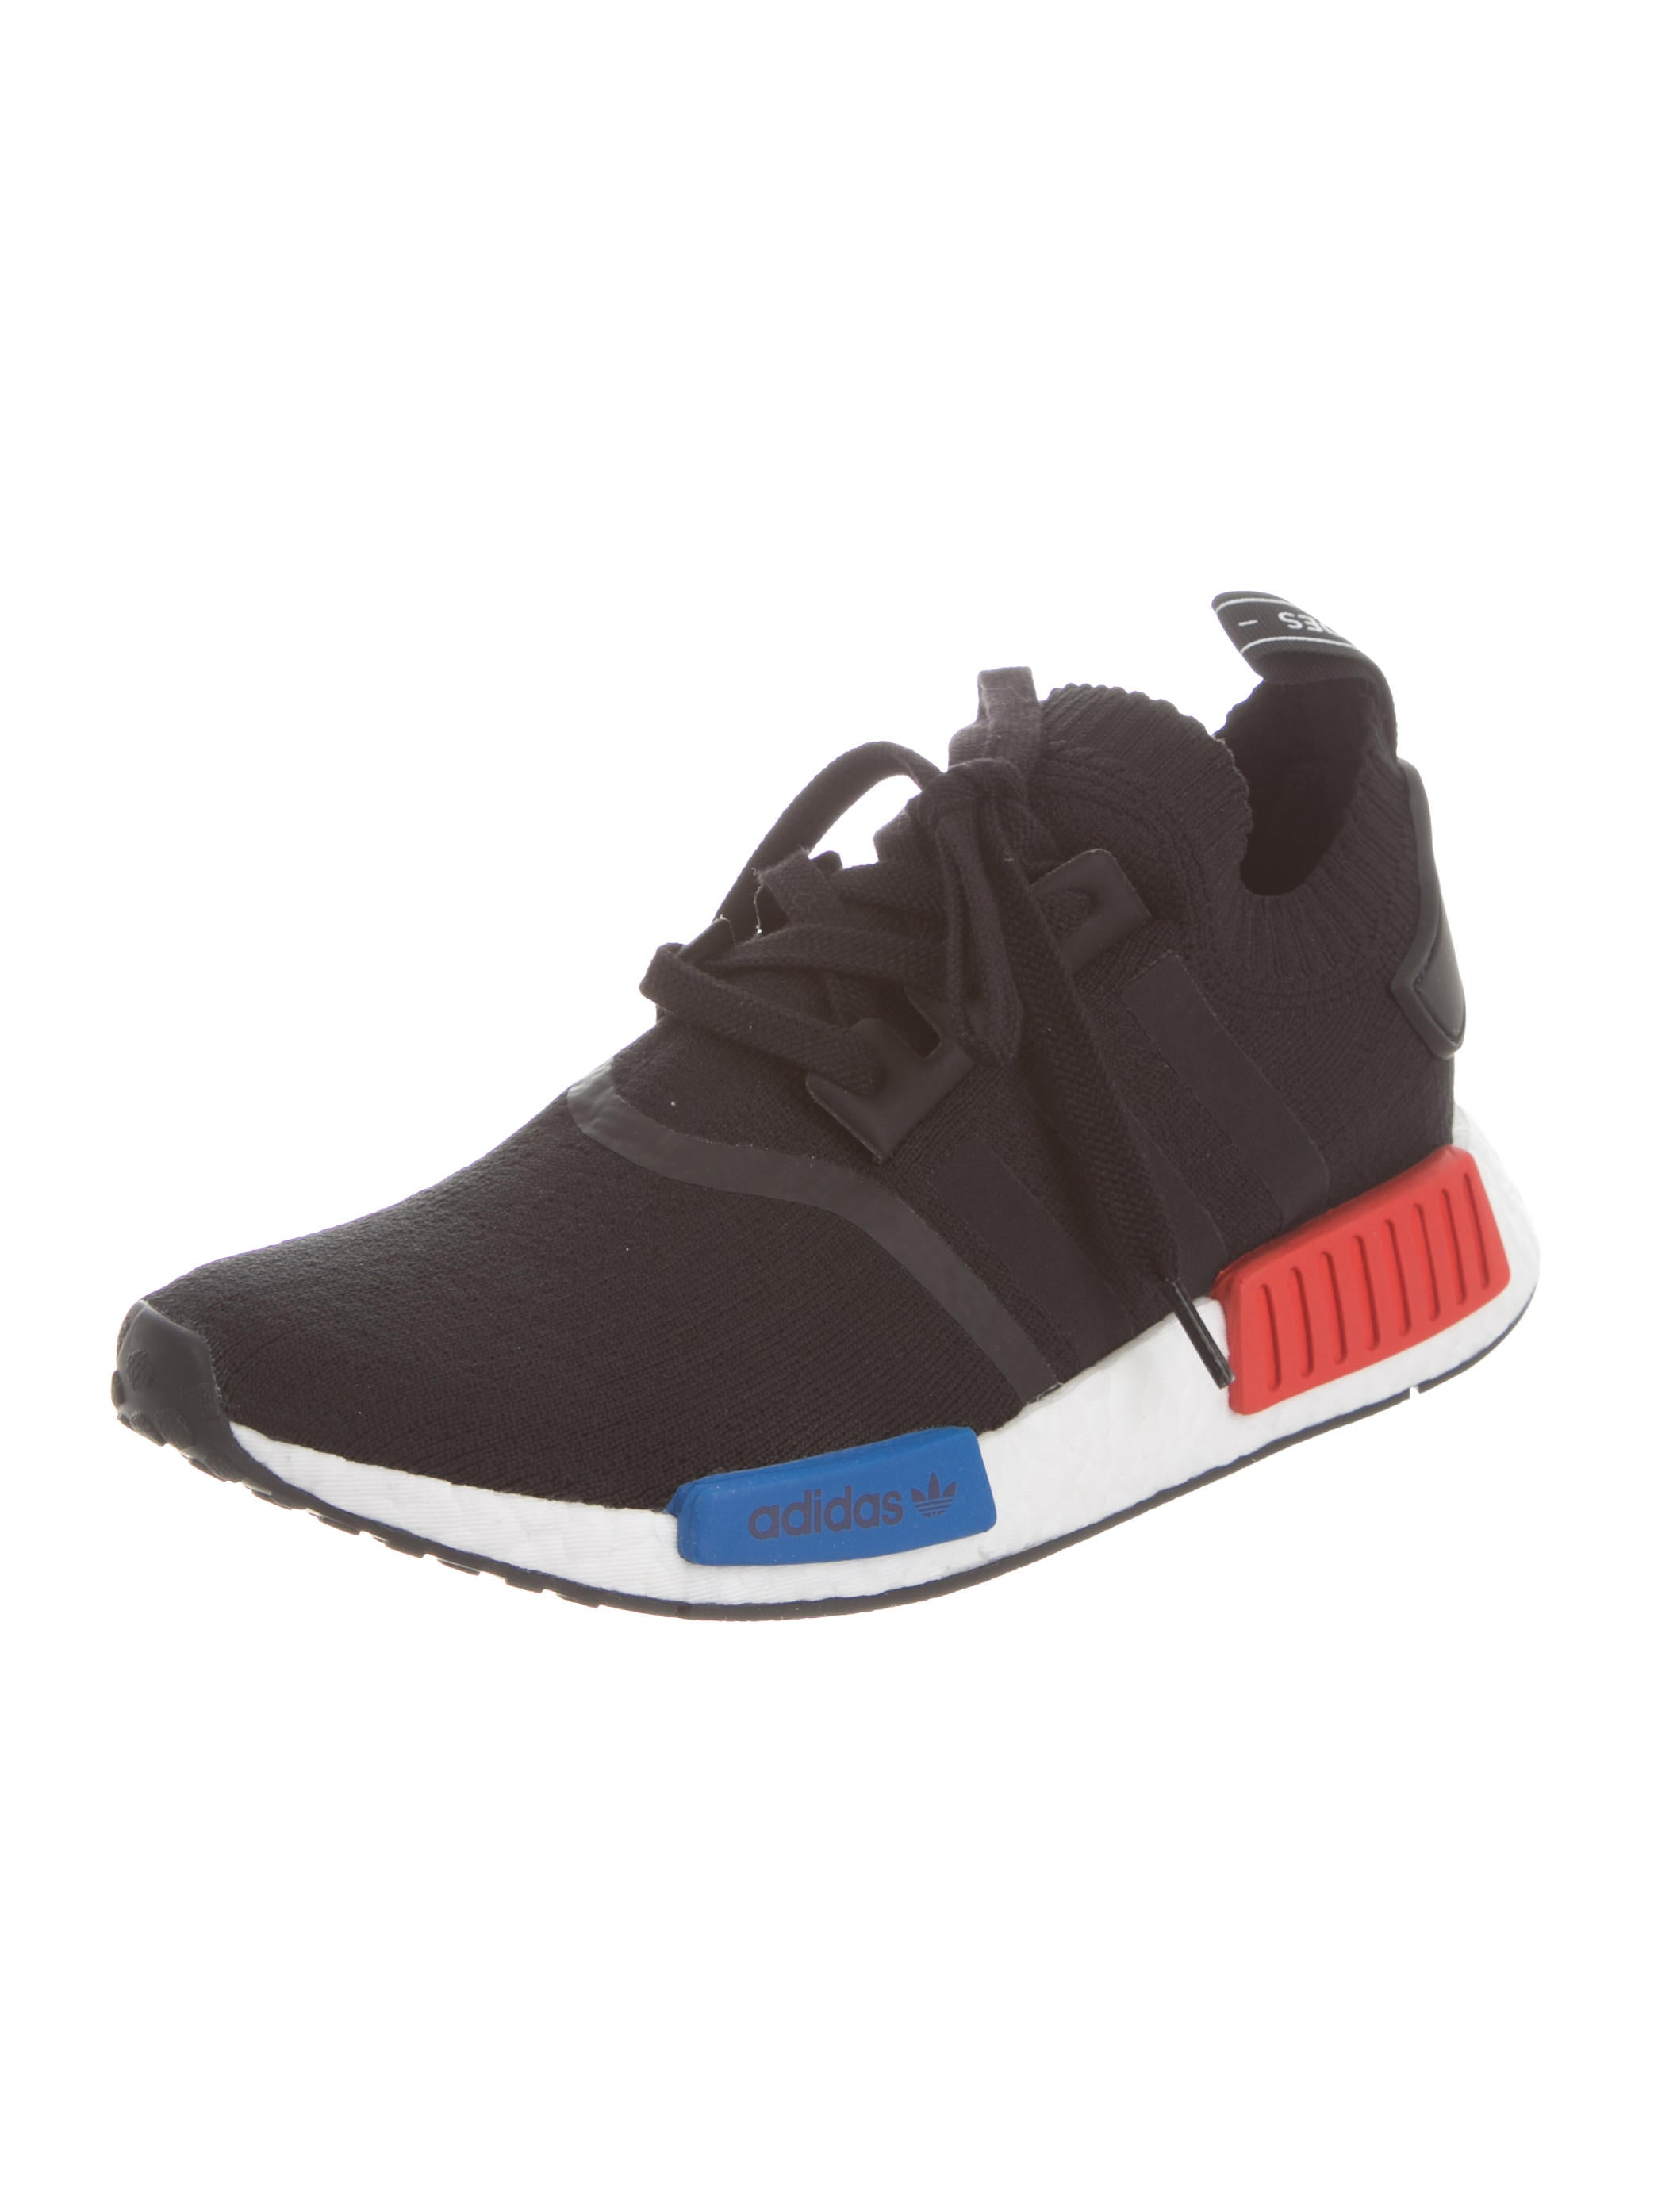 adidas 2017 nmd r1 og sneakers w tags shoes. Black Bedroom Furniture Sets. Home Design Ideas